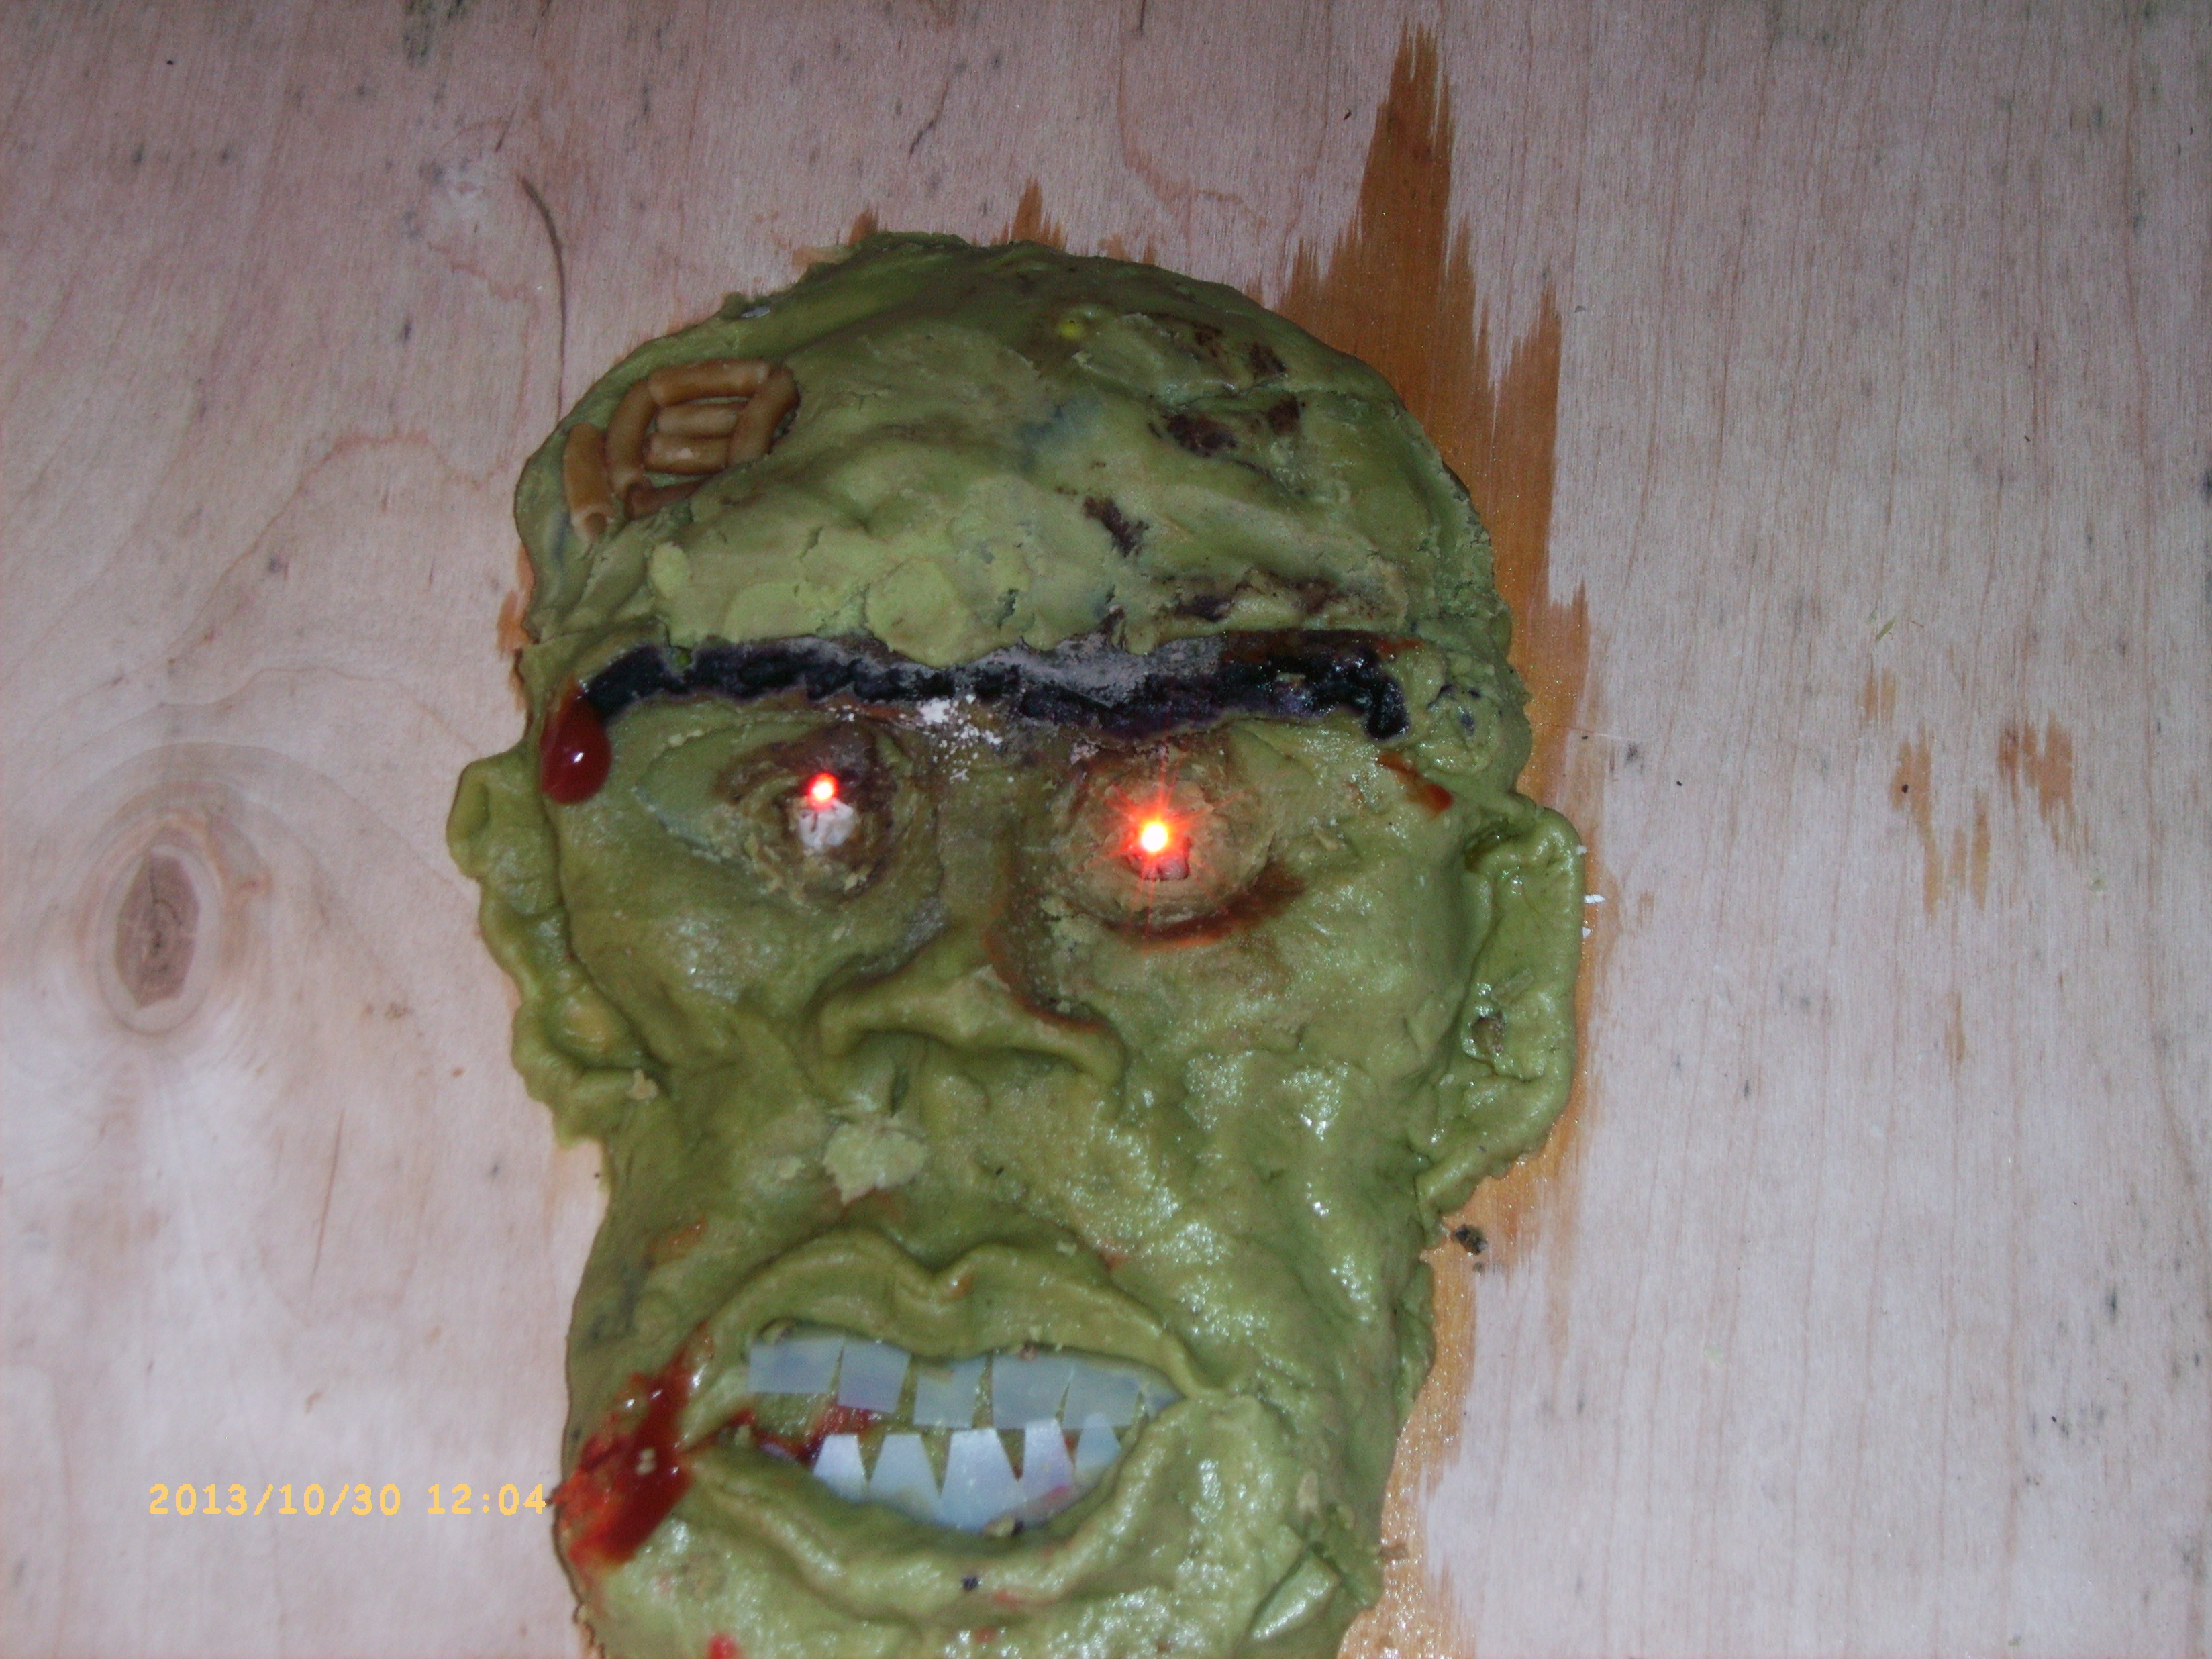 Picture of Zombie Head